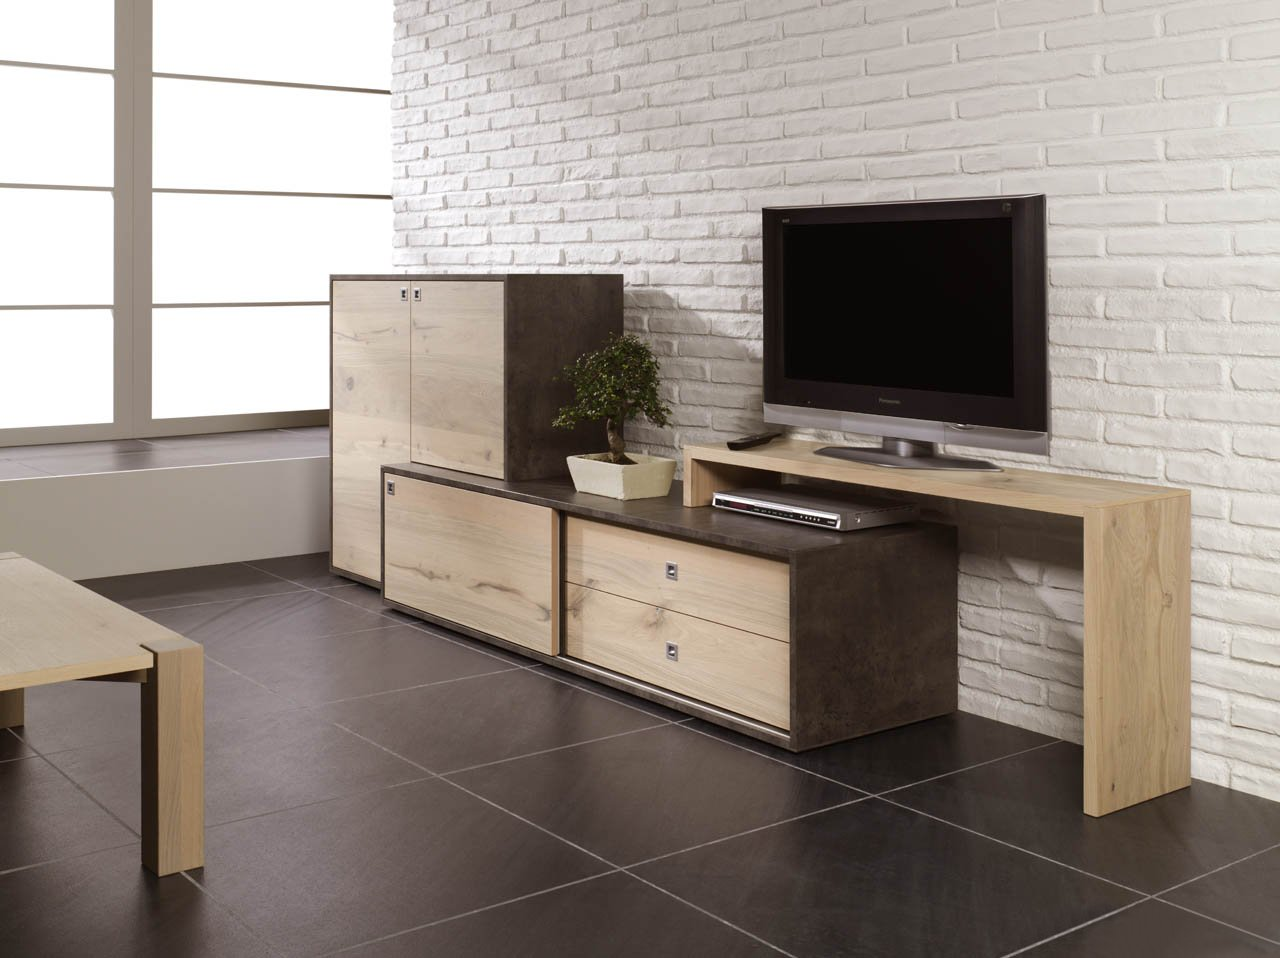 moderne eckbank f r k che eckbank k che otto outdoor l beck nolte landhaus country. Black Bedroom Furniture Sets. Home Design Ideas